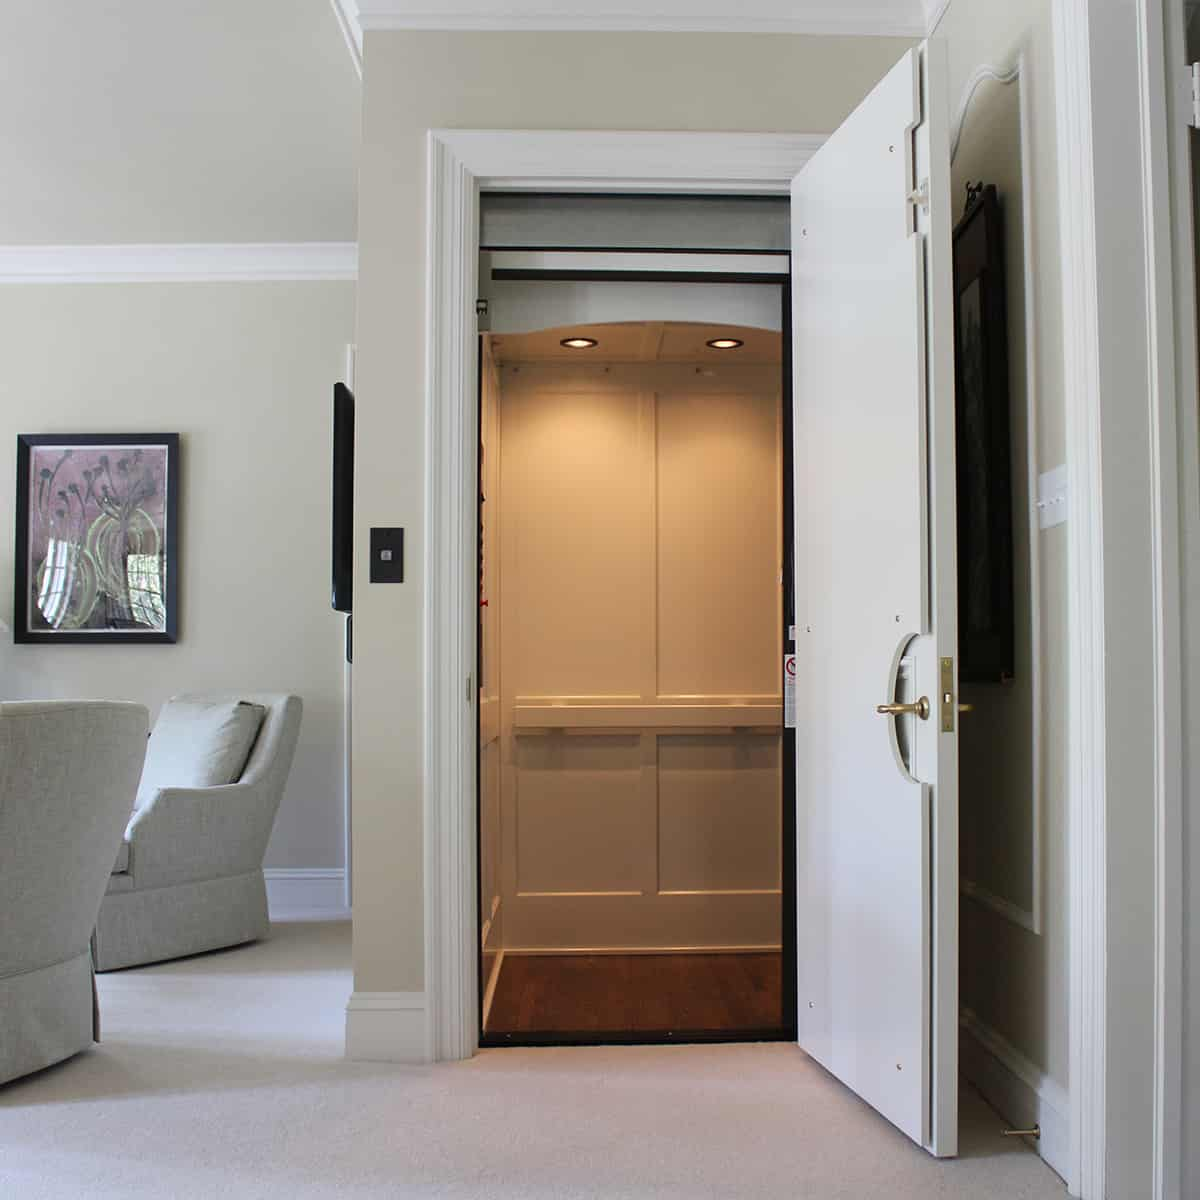 How Much Does A Home Elevator Cost?